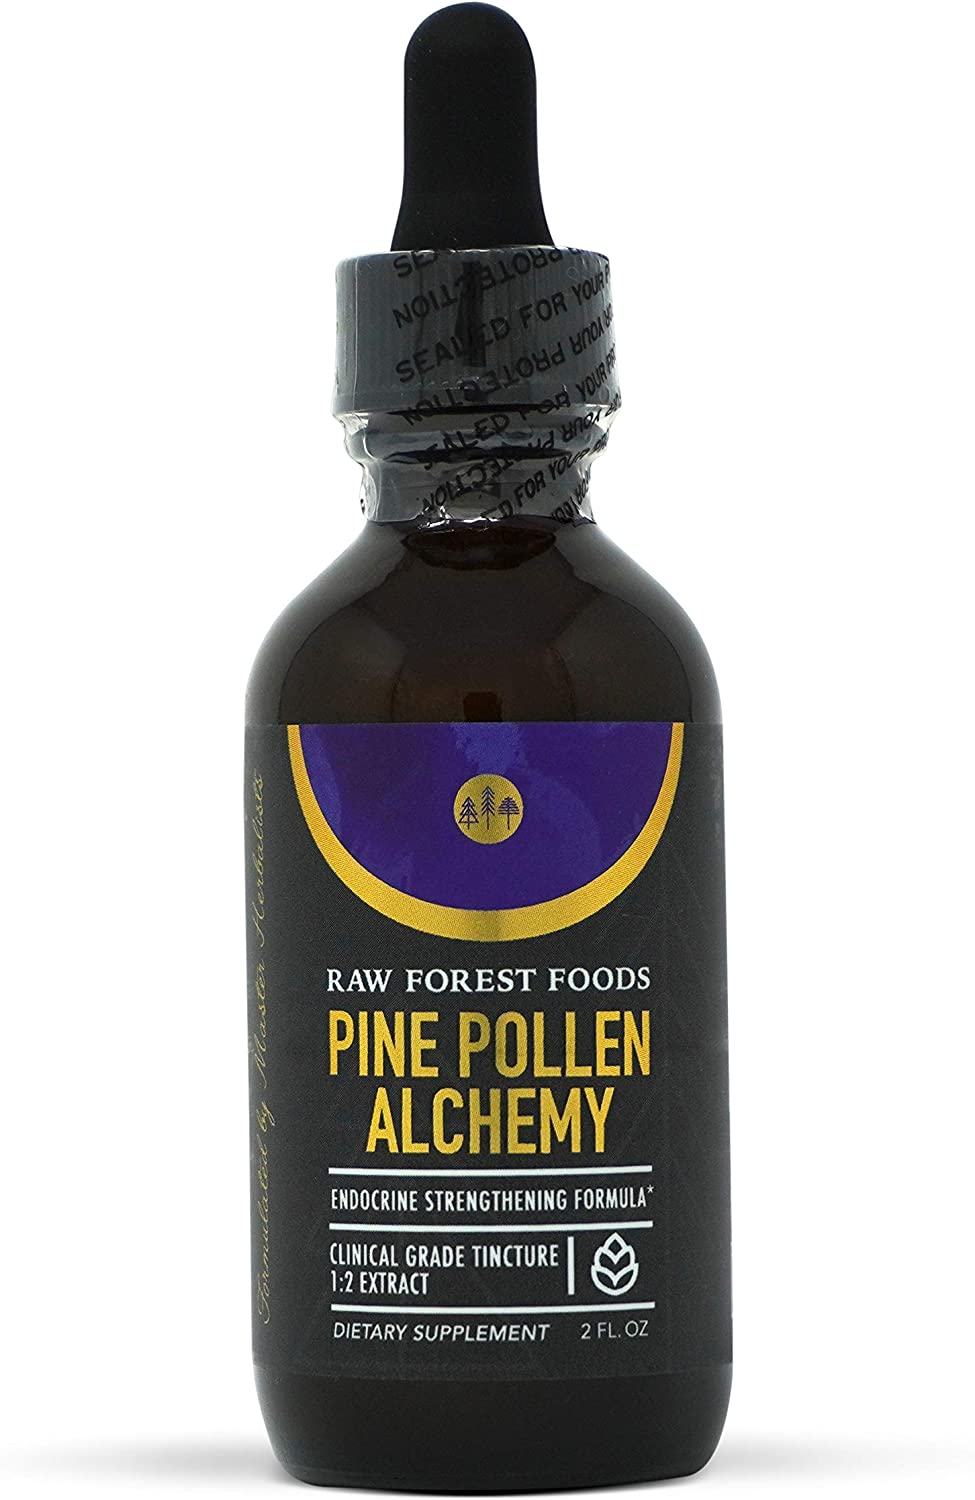 Pine Pollen Alchemy Tincture 2 Ounces — Original Endocrine Formula — Pine Pollen, He Shou Wu, Astragalus Root, Stinging Nettle Root, Chinese Ginseng Root, Cordyceps — Only from RAW Forest Foods